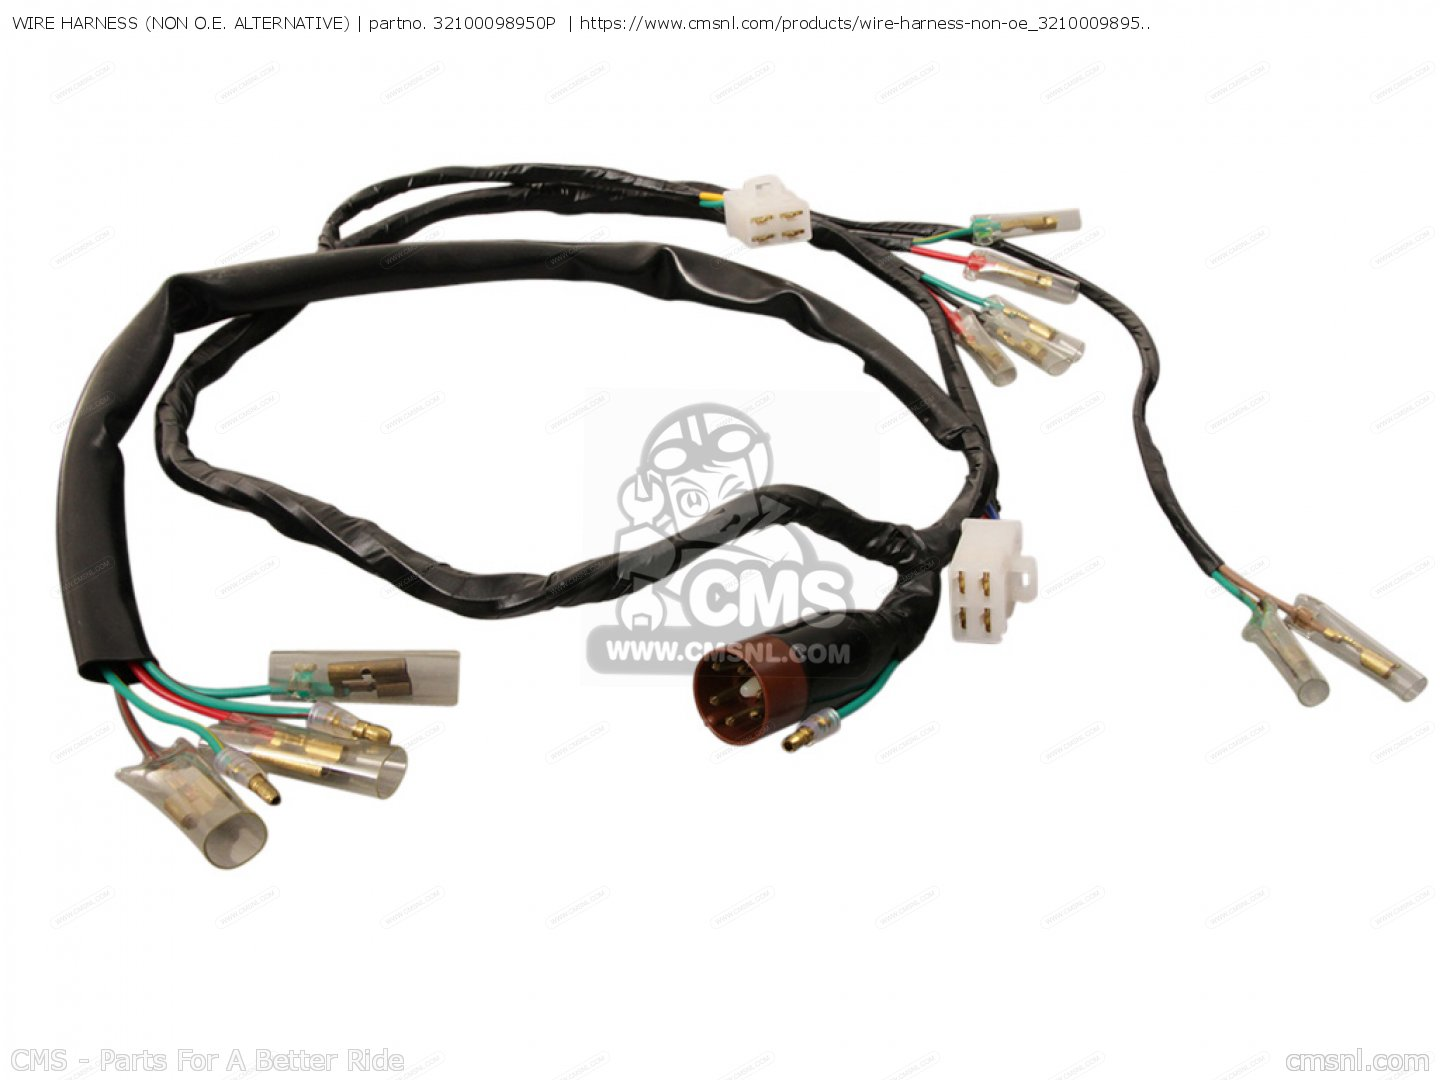 WIRE HARNESS (NON O.E. ALTERNATIVE) on